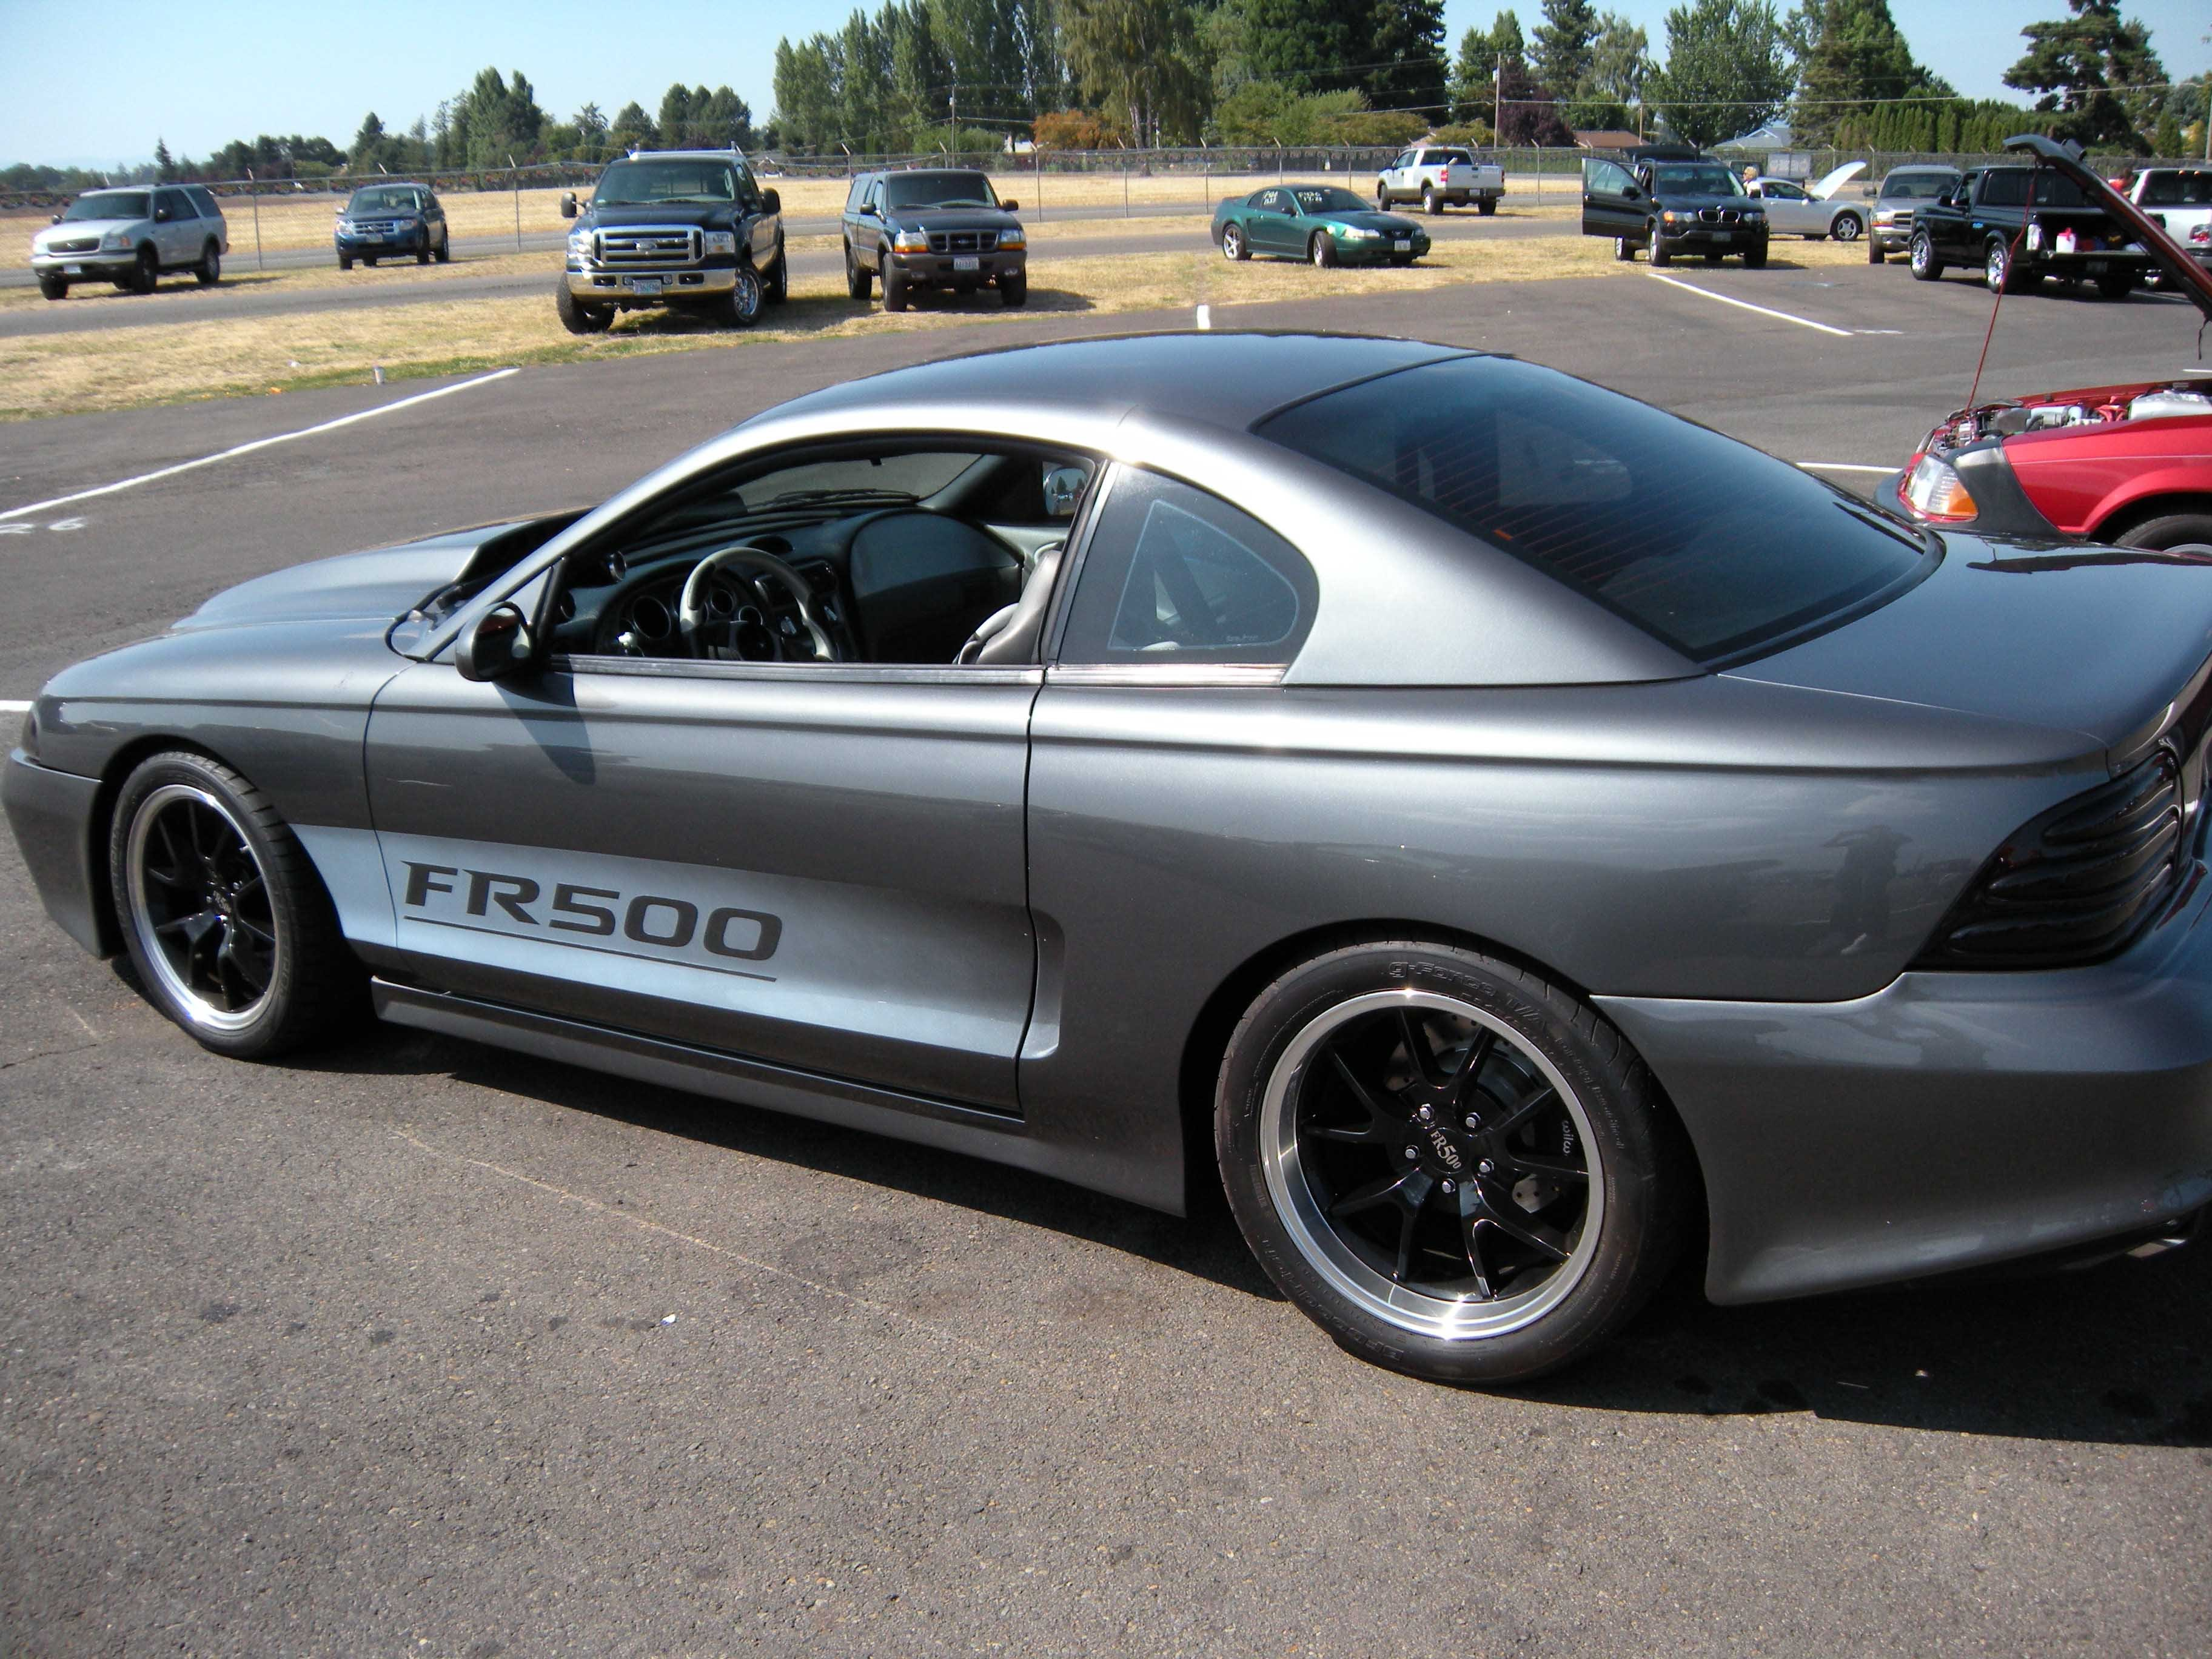 1994 1998 Fr500 Clone Creation 1150rwhp What Do You